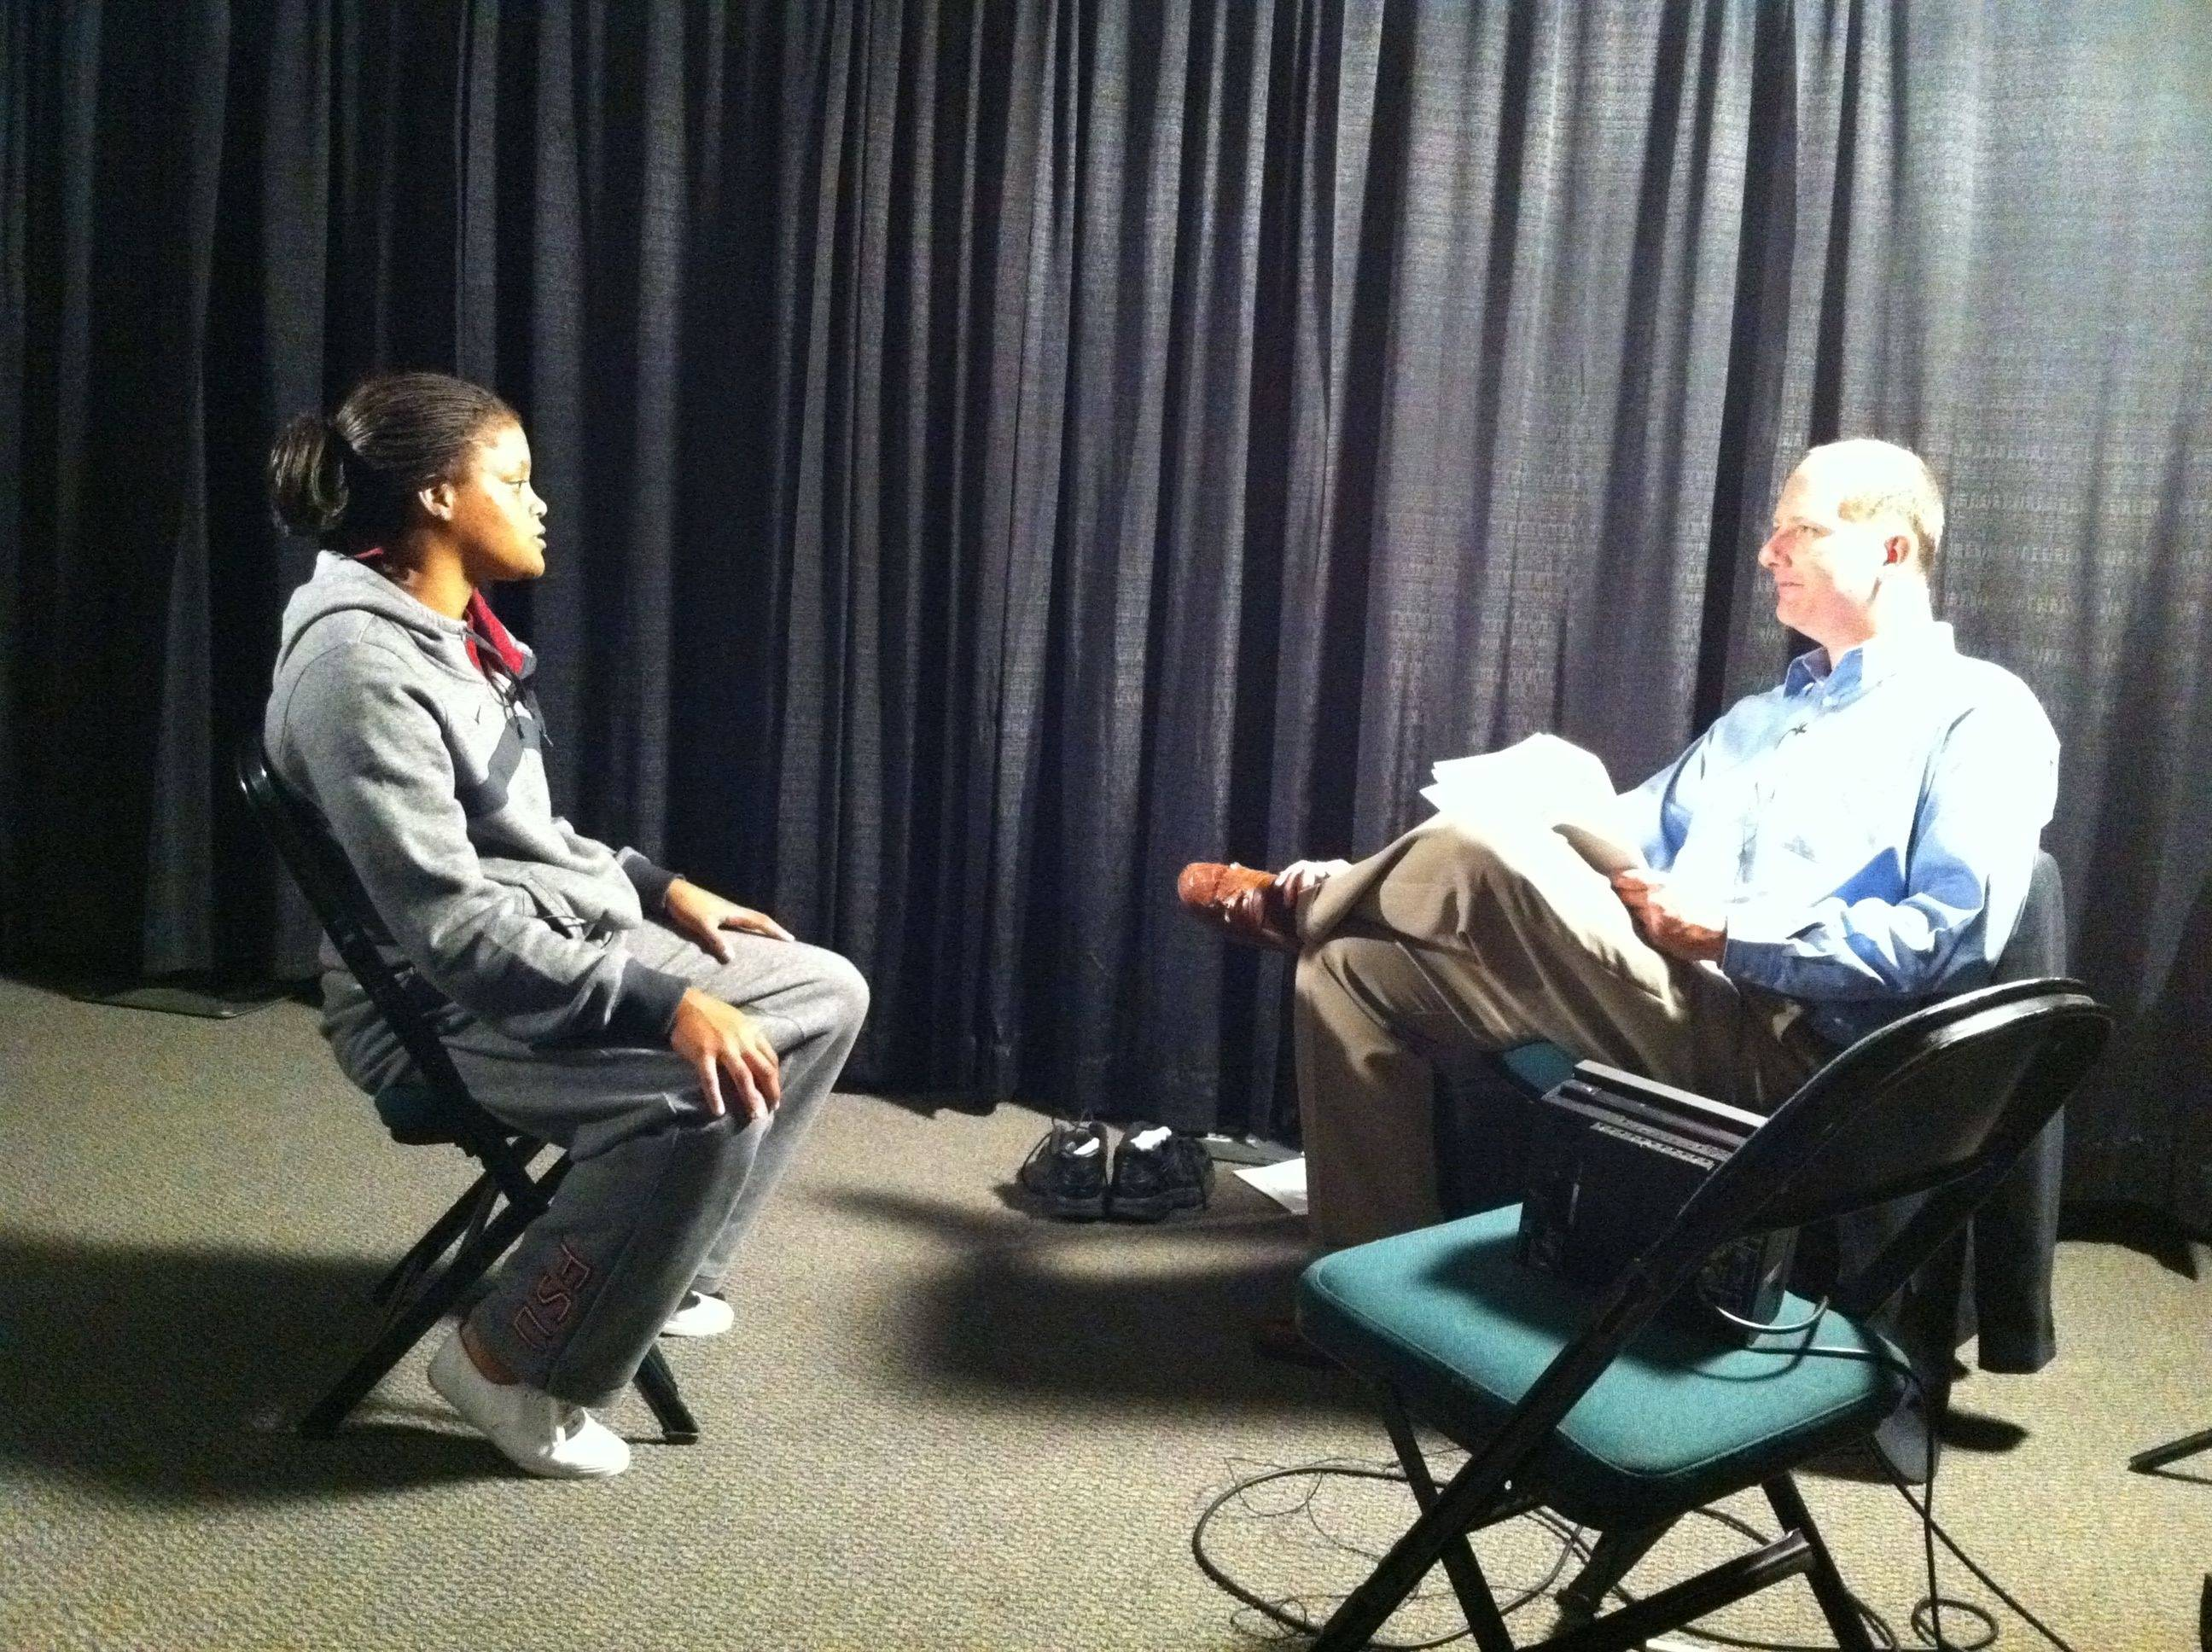 Courtney Ward capped off the day with one final interview.